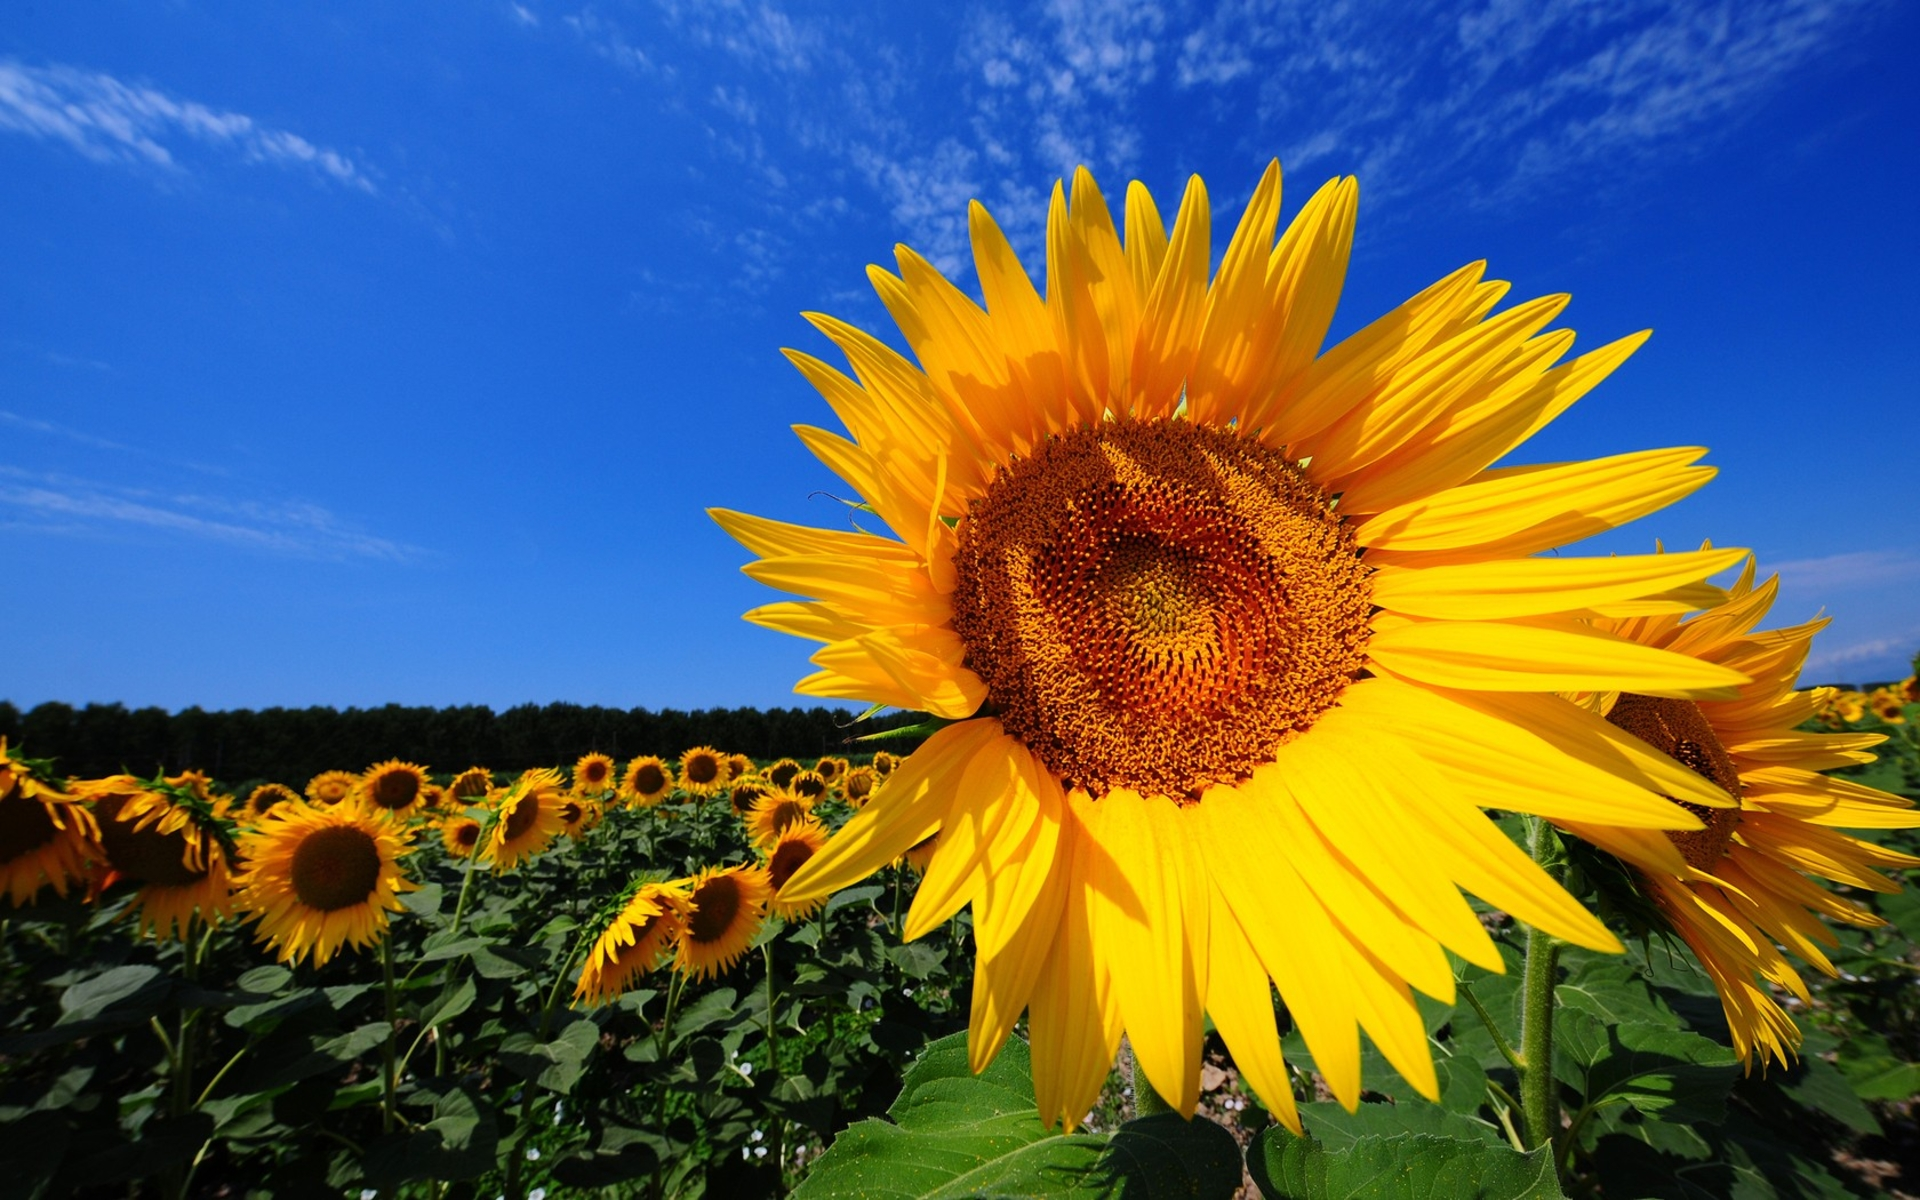 Field Of Sunflowers Wallpaper: Sunflower Fields HD Wallpaper